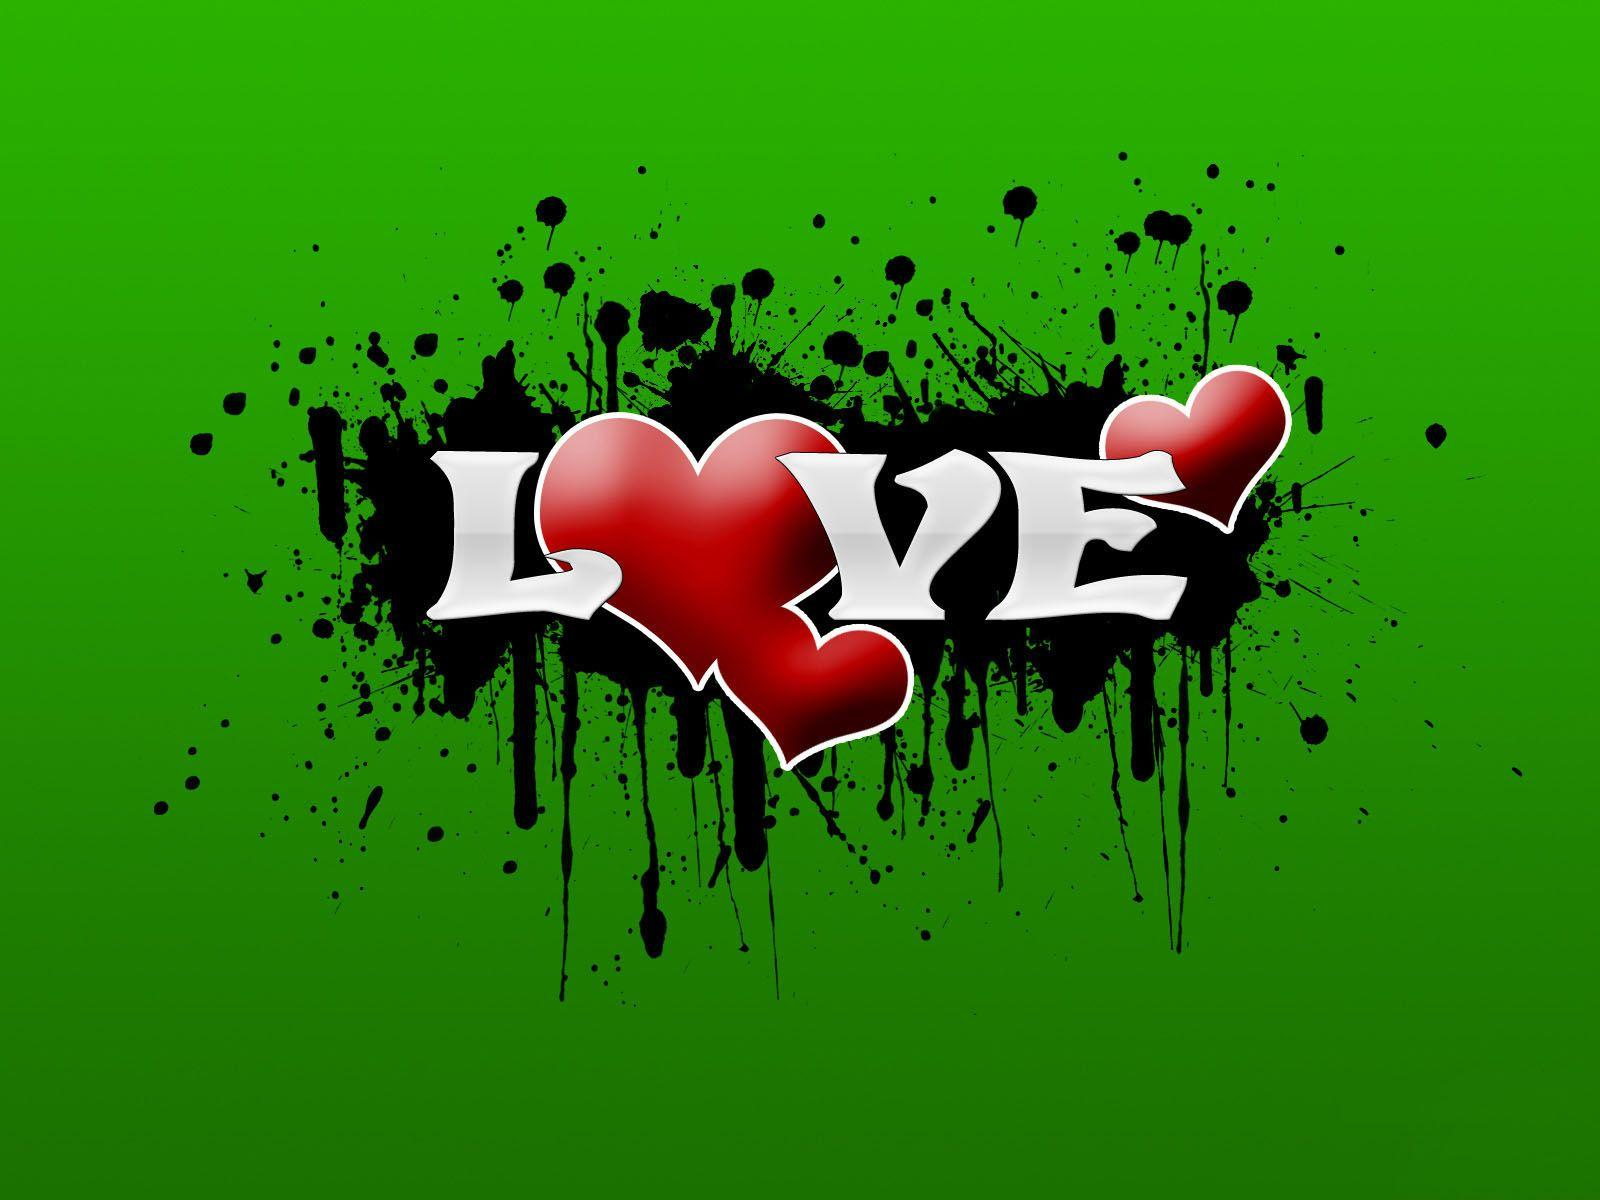 Love Images Hd 3d Wallpaper : Love Wallpapers 3D - Wallpaper cave